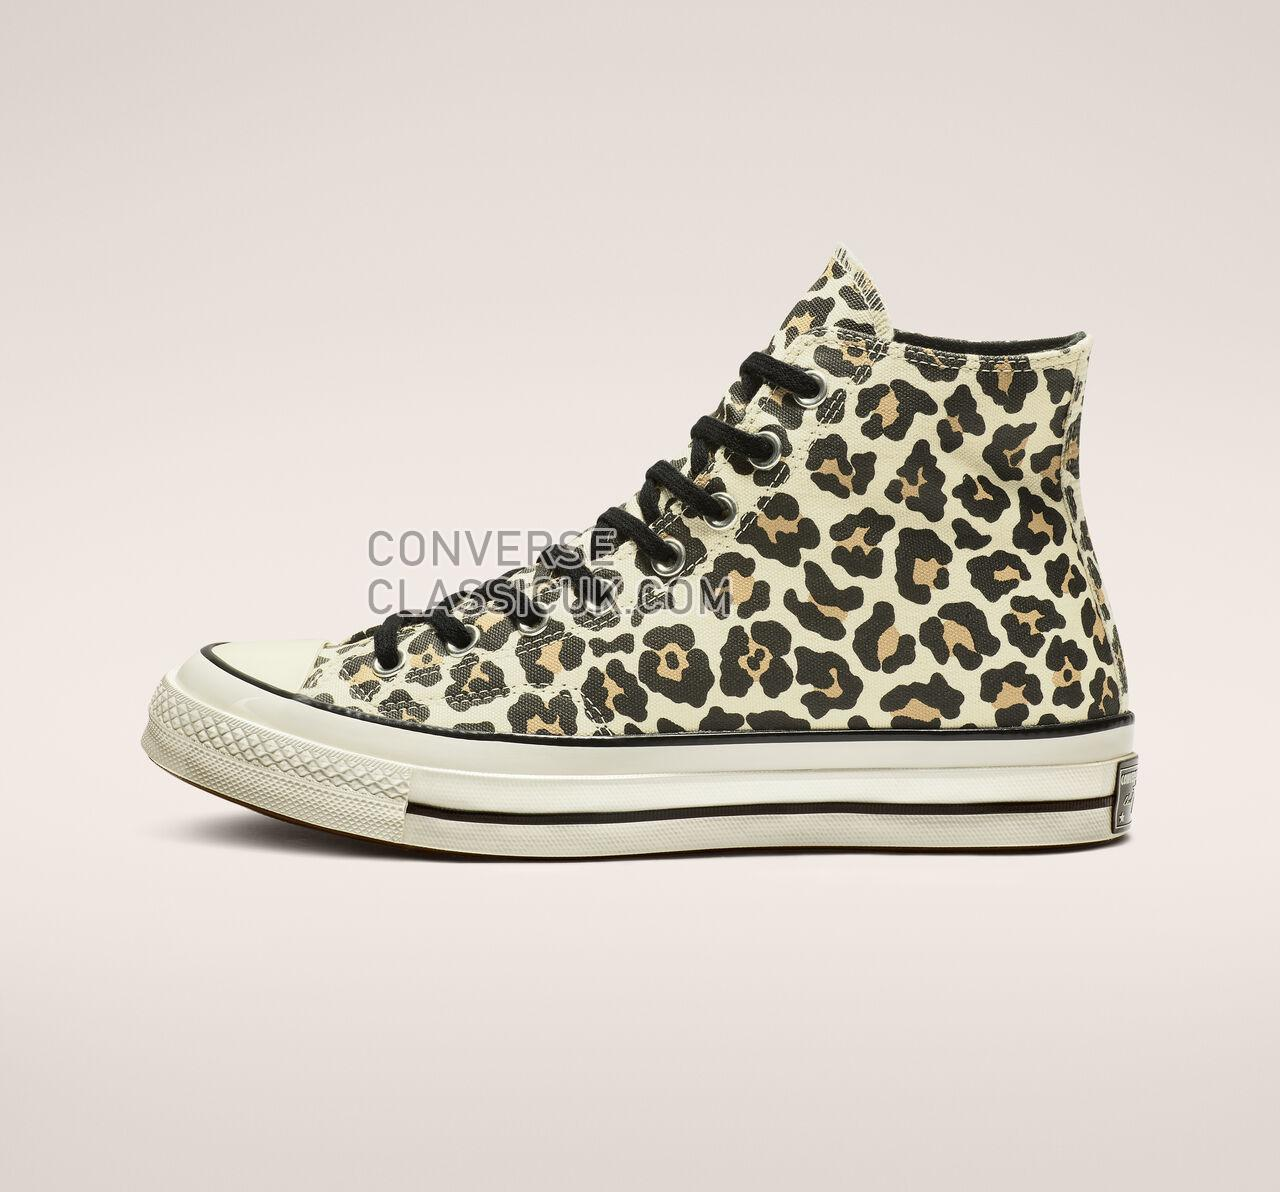 Converse Chuck 70 Archive Print High Top Mens Womens Unisex 163406C Driftwood Mult/Light Fawn Shoes